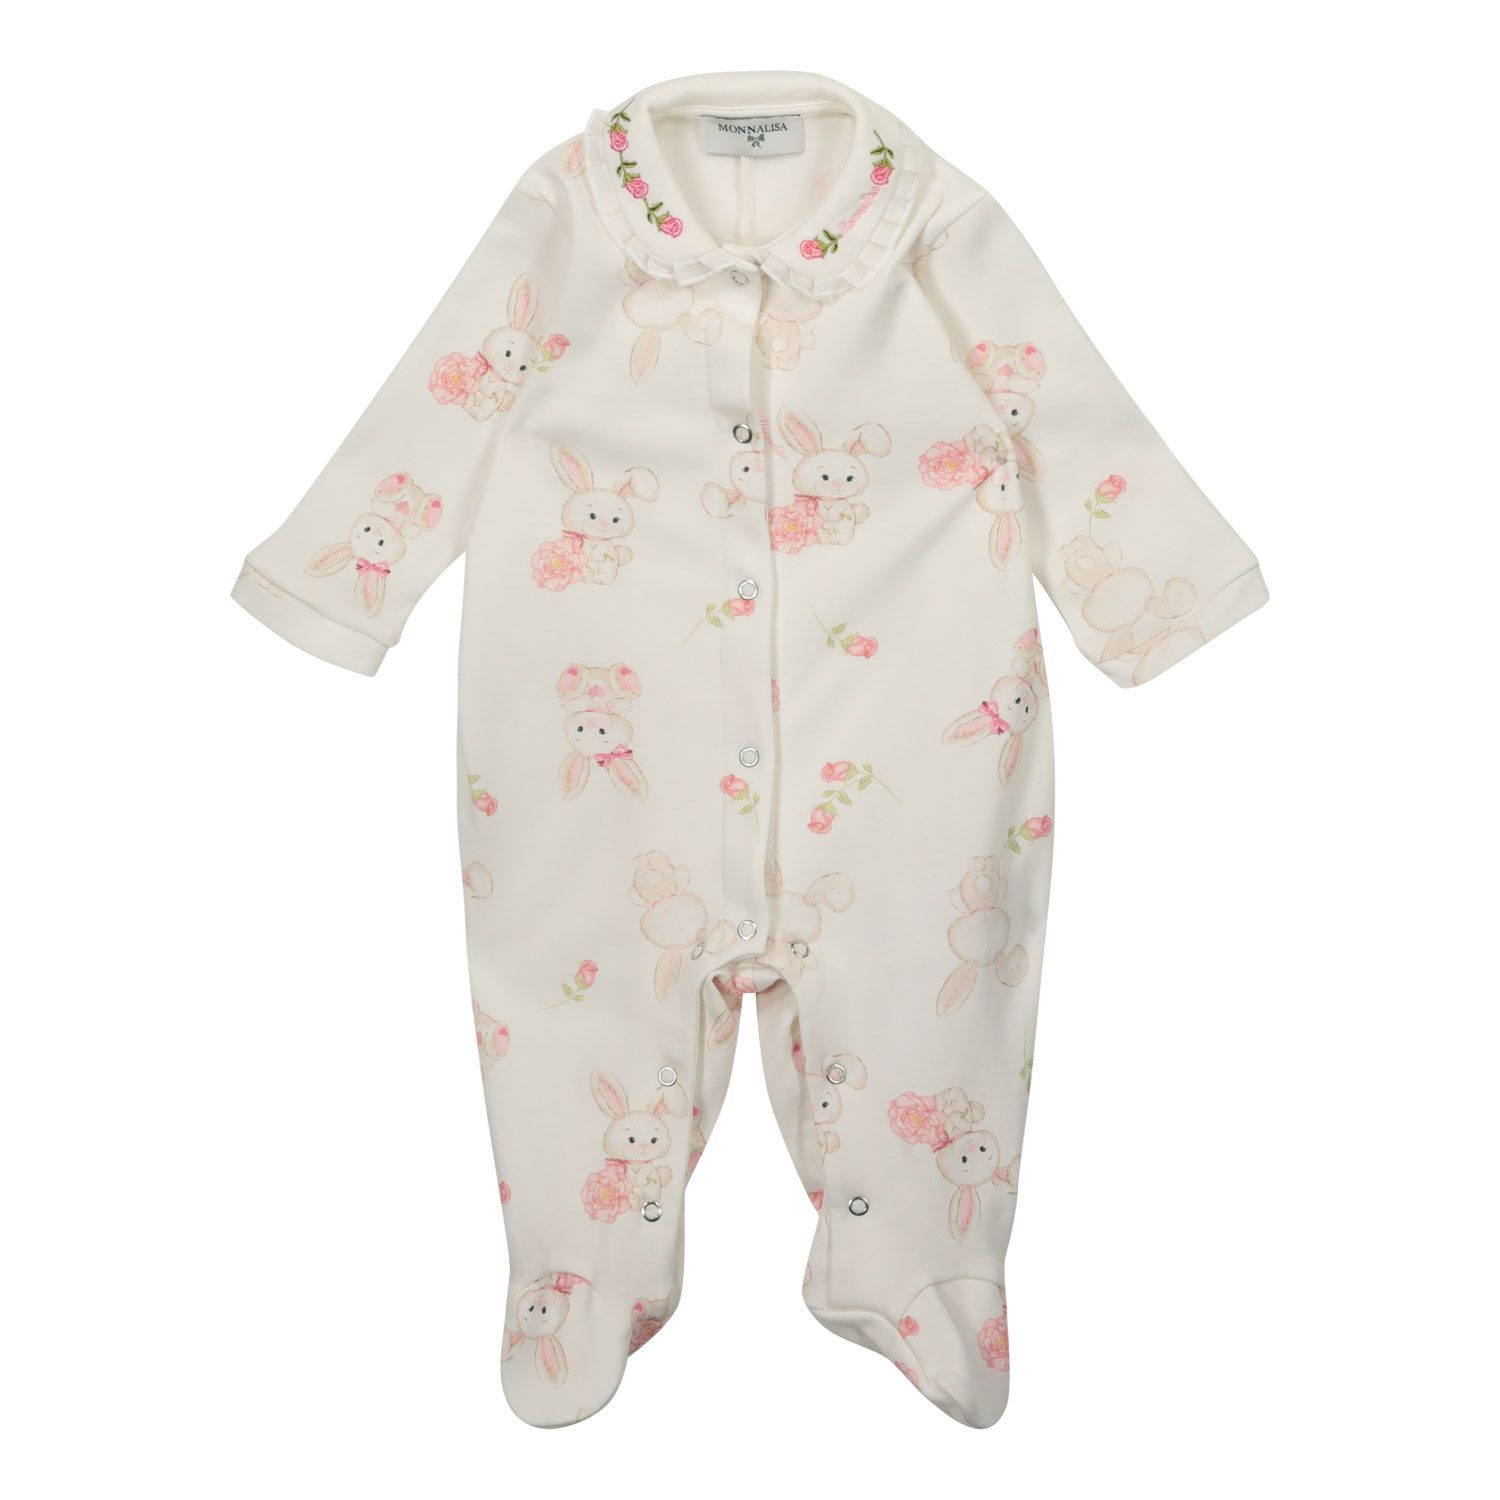 Picture of MonnaLisa 357200 baby playsuit off white